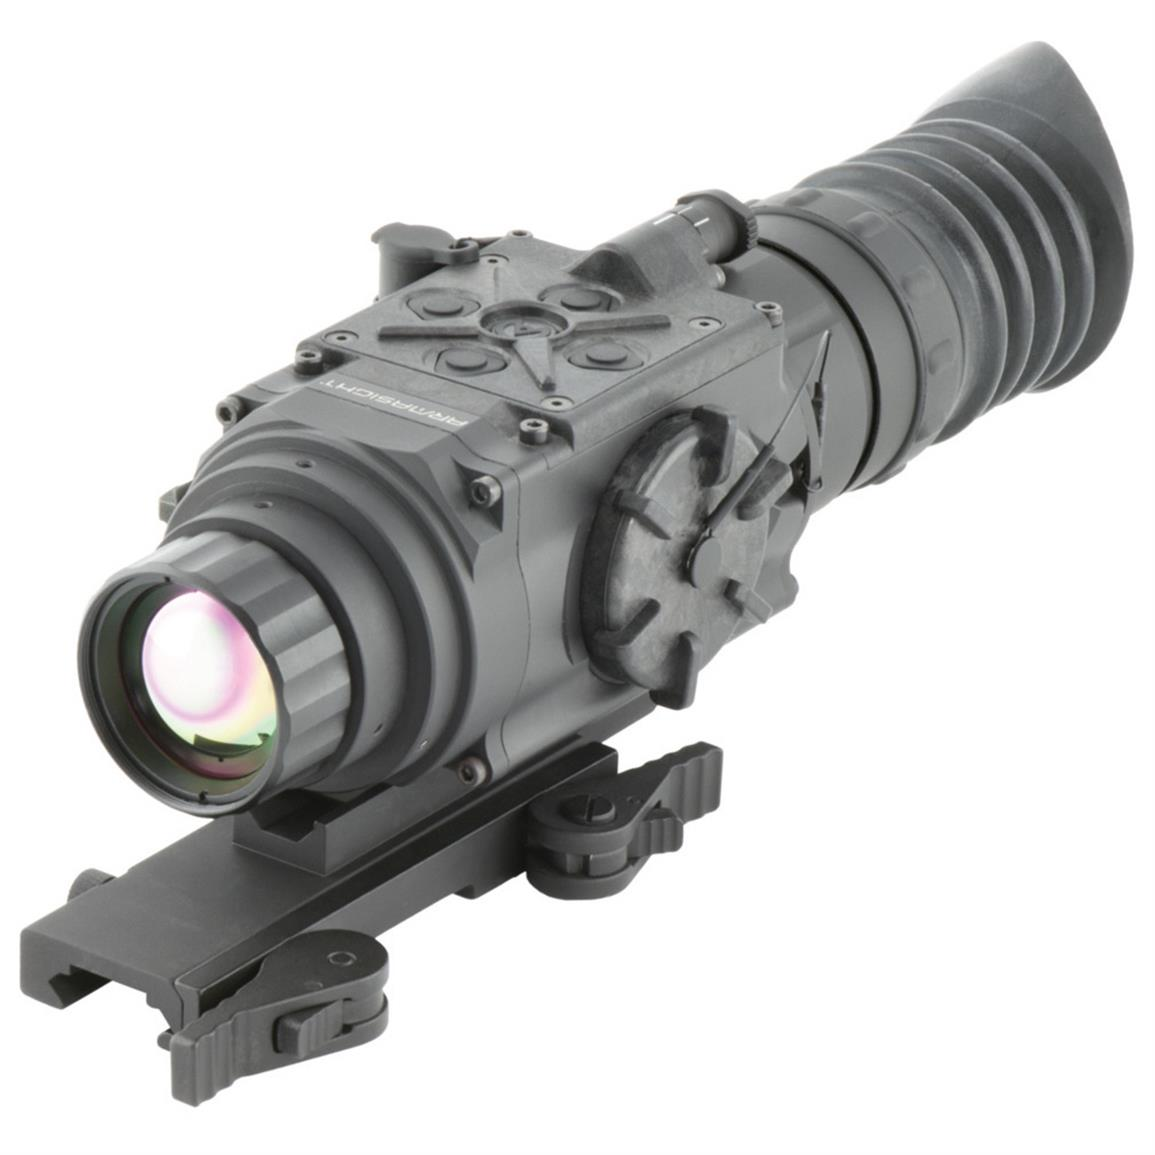 Armasight Predator 336 2-8x25mm (30 Hz) Thermal Imaging Weapon Sight